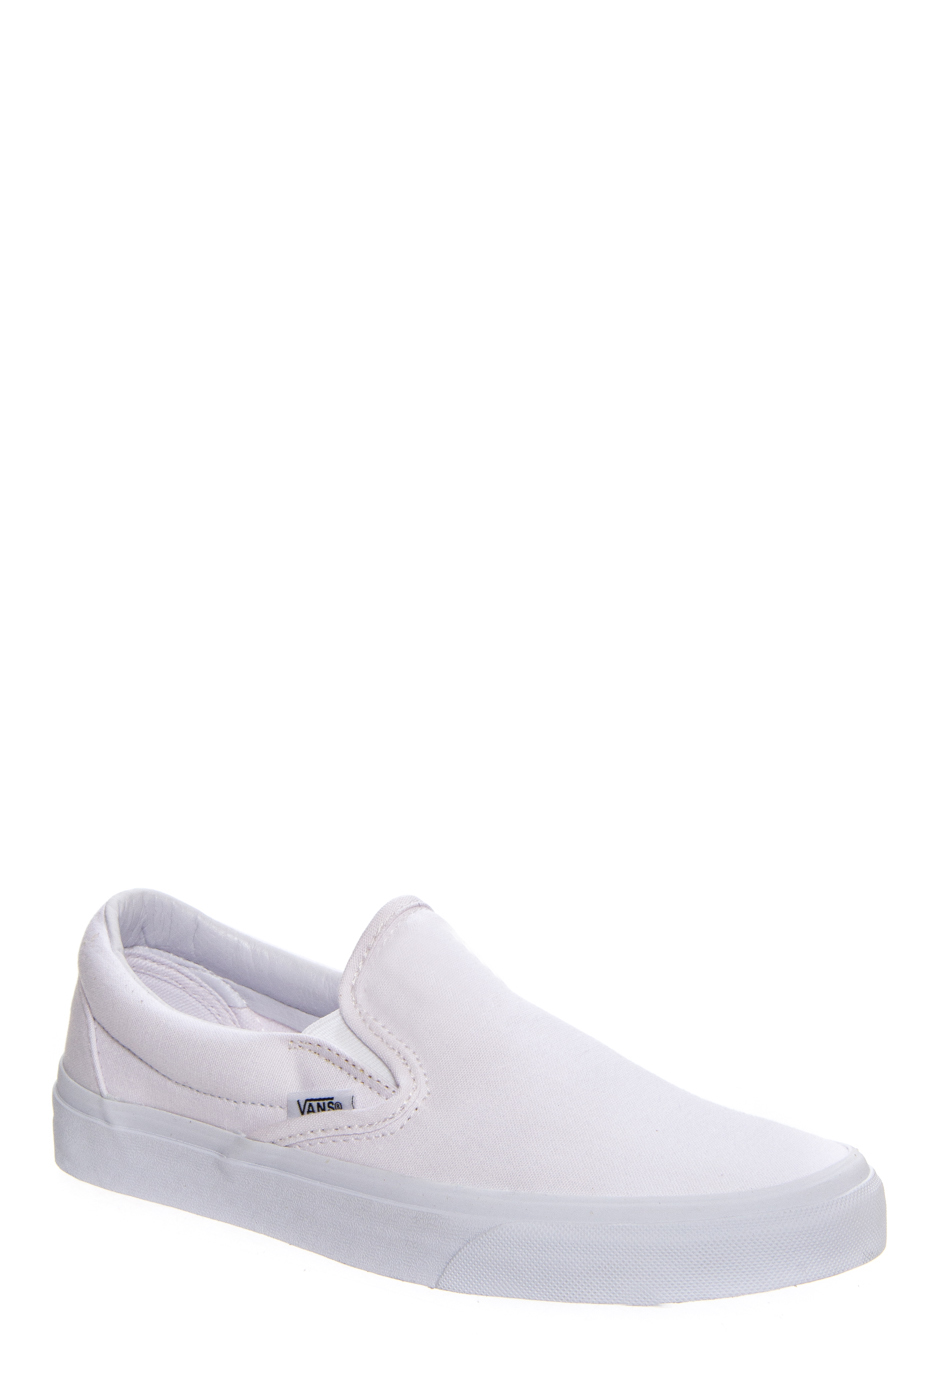 VANS Unisex Classic Slip On Sneakers - True White / True White